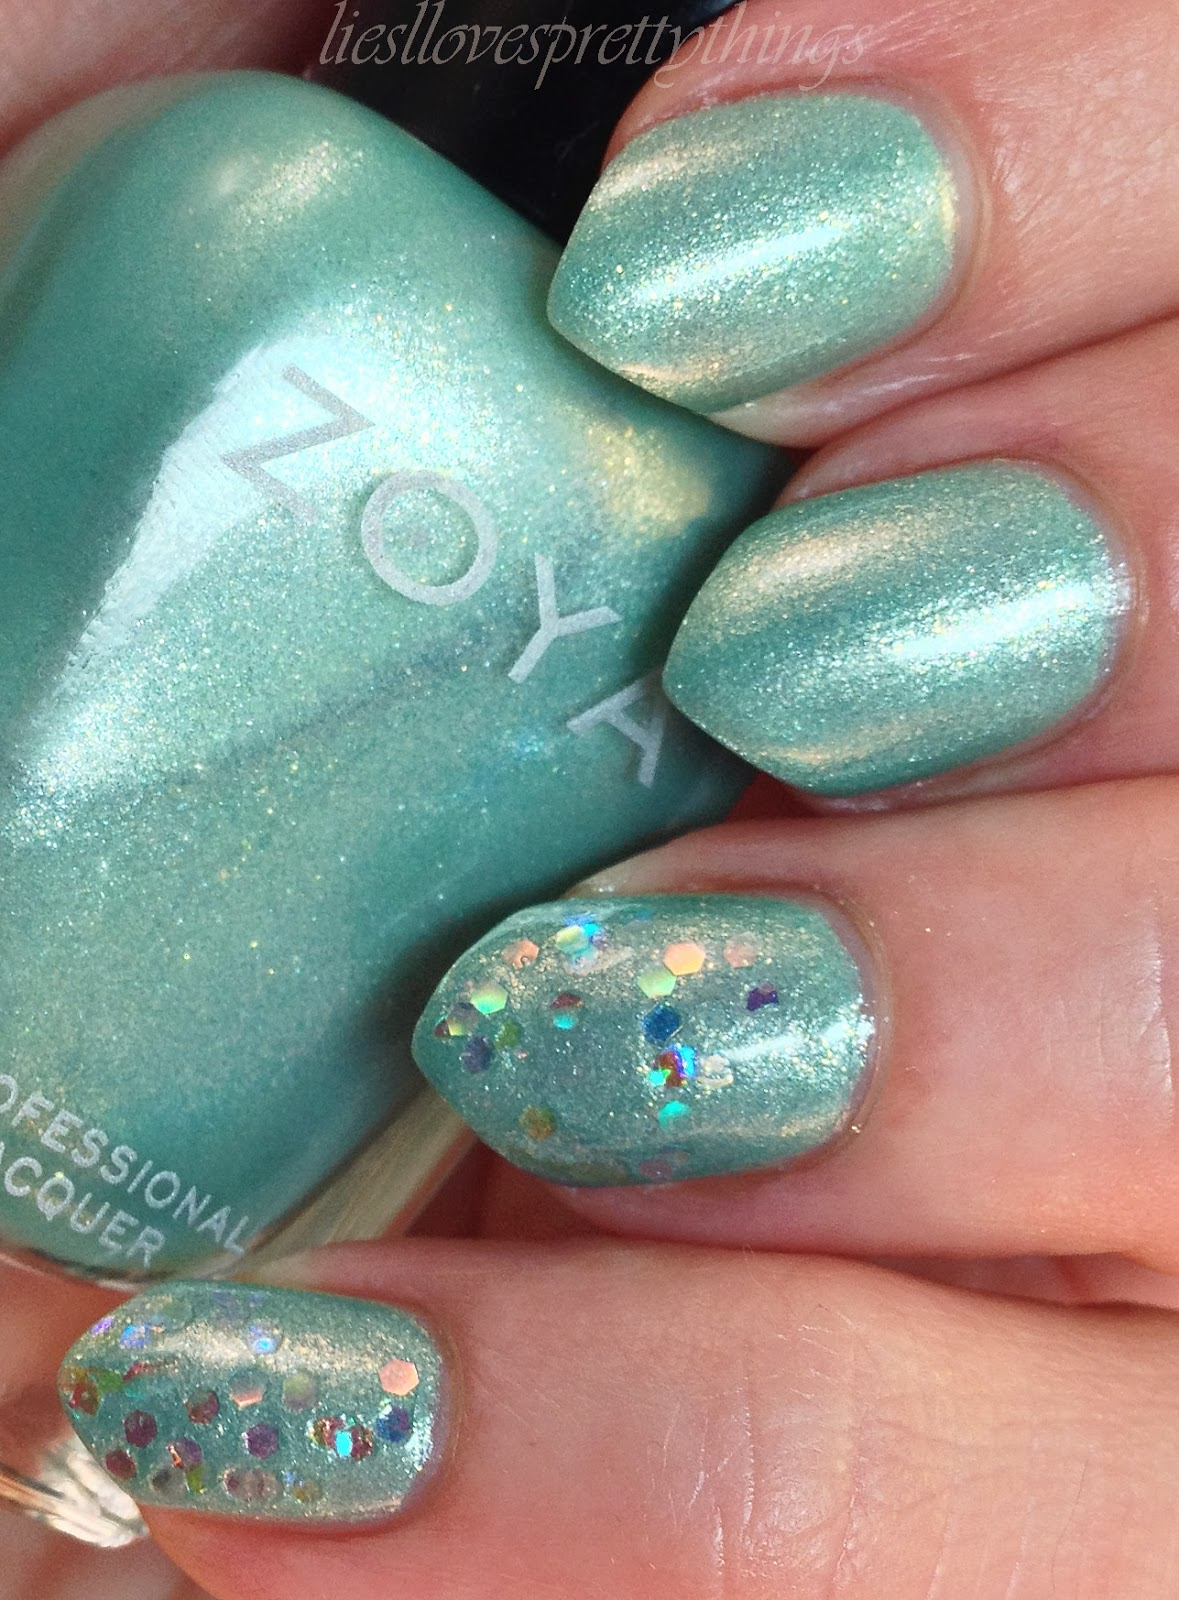 Zoya Dillon swatch and review